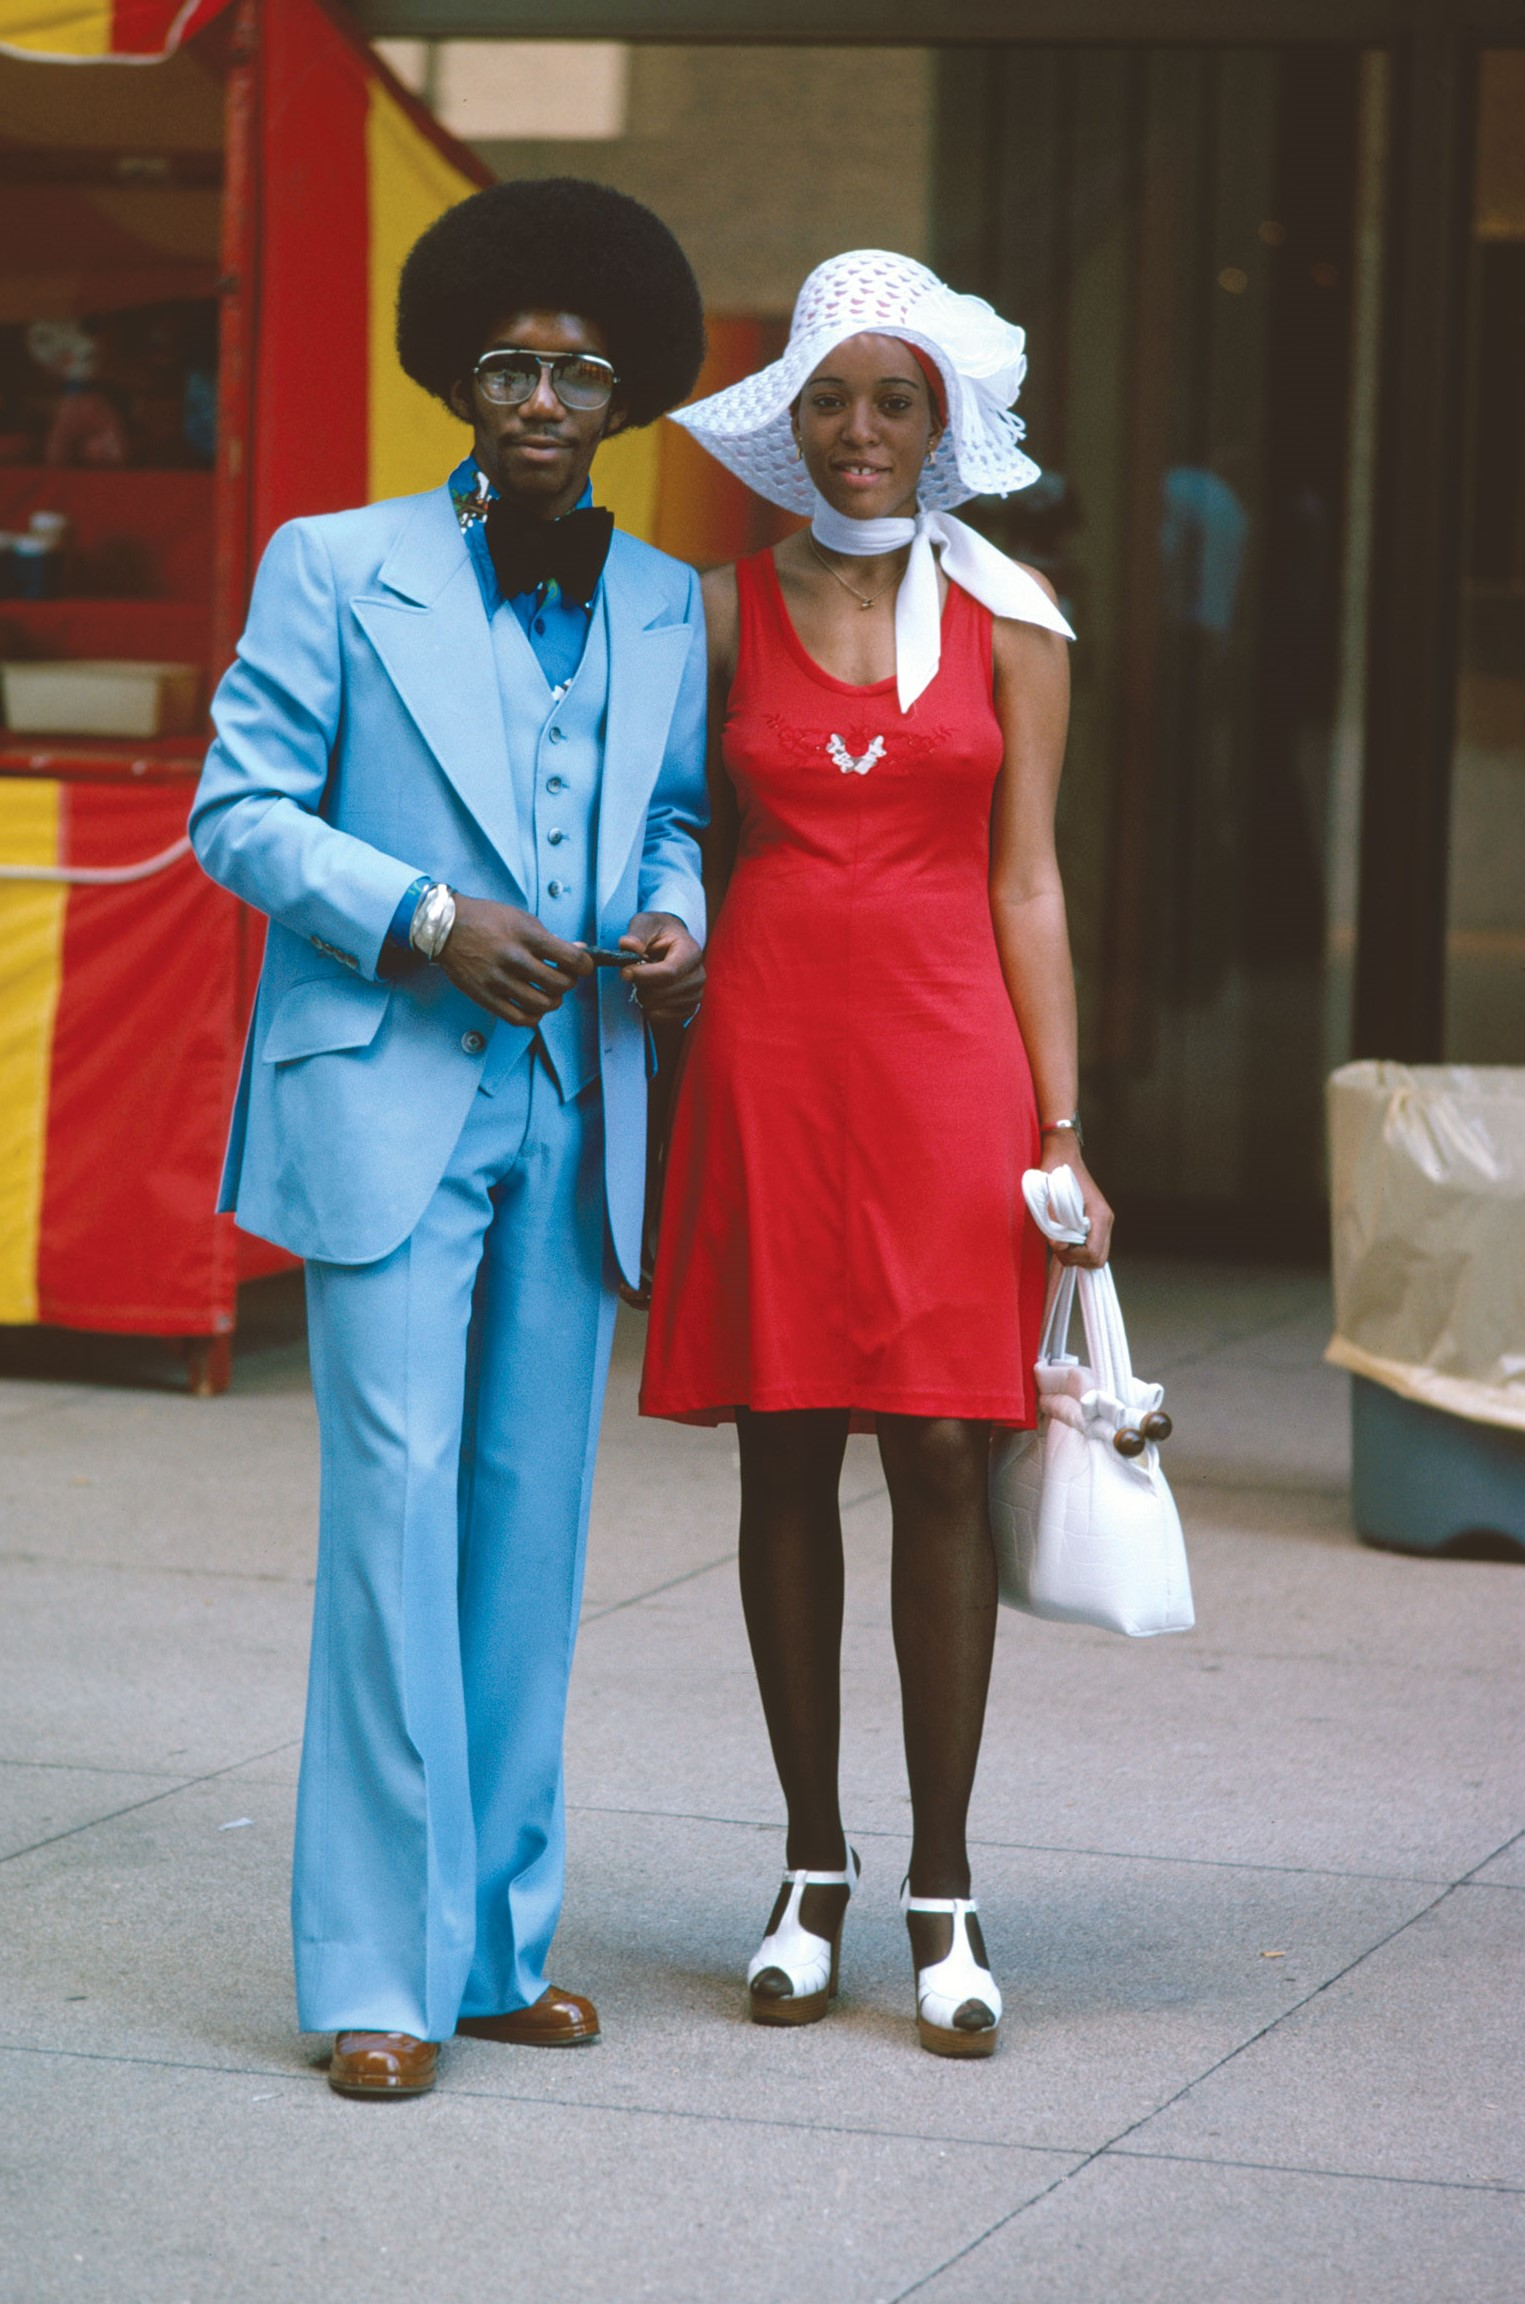 Well_dressed_couple,_Michigan_Avenue,_Ch